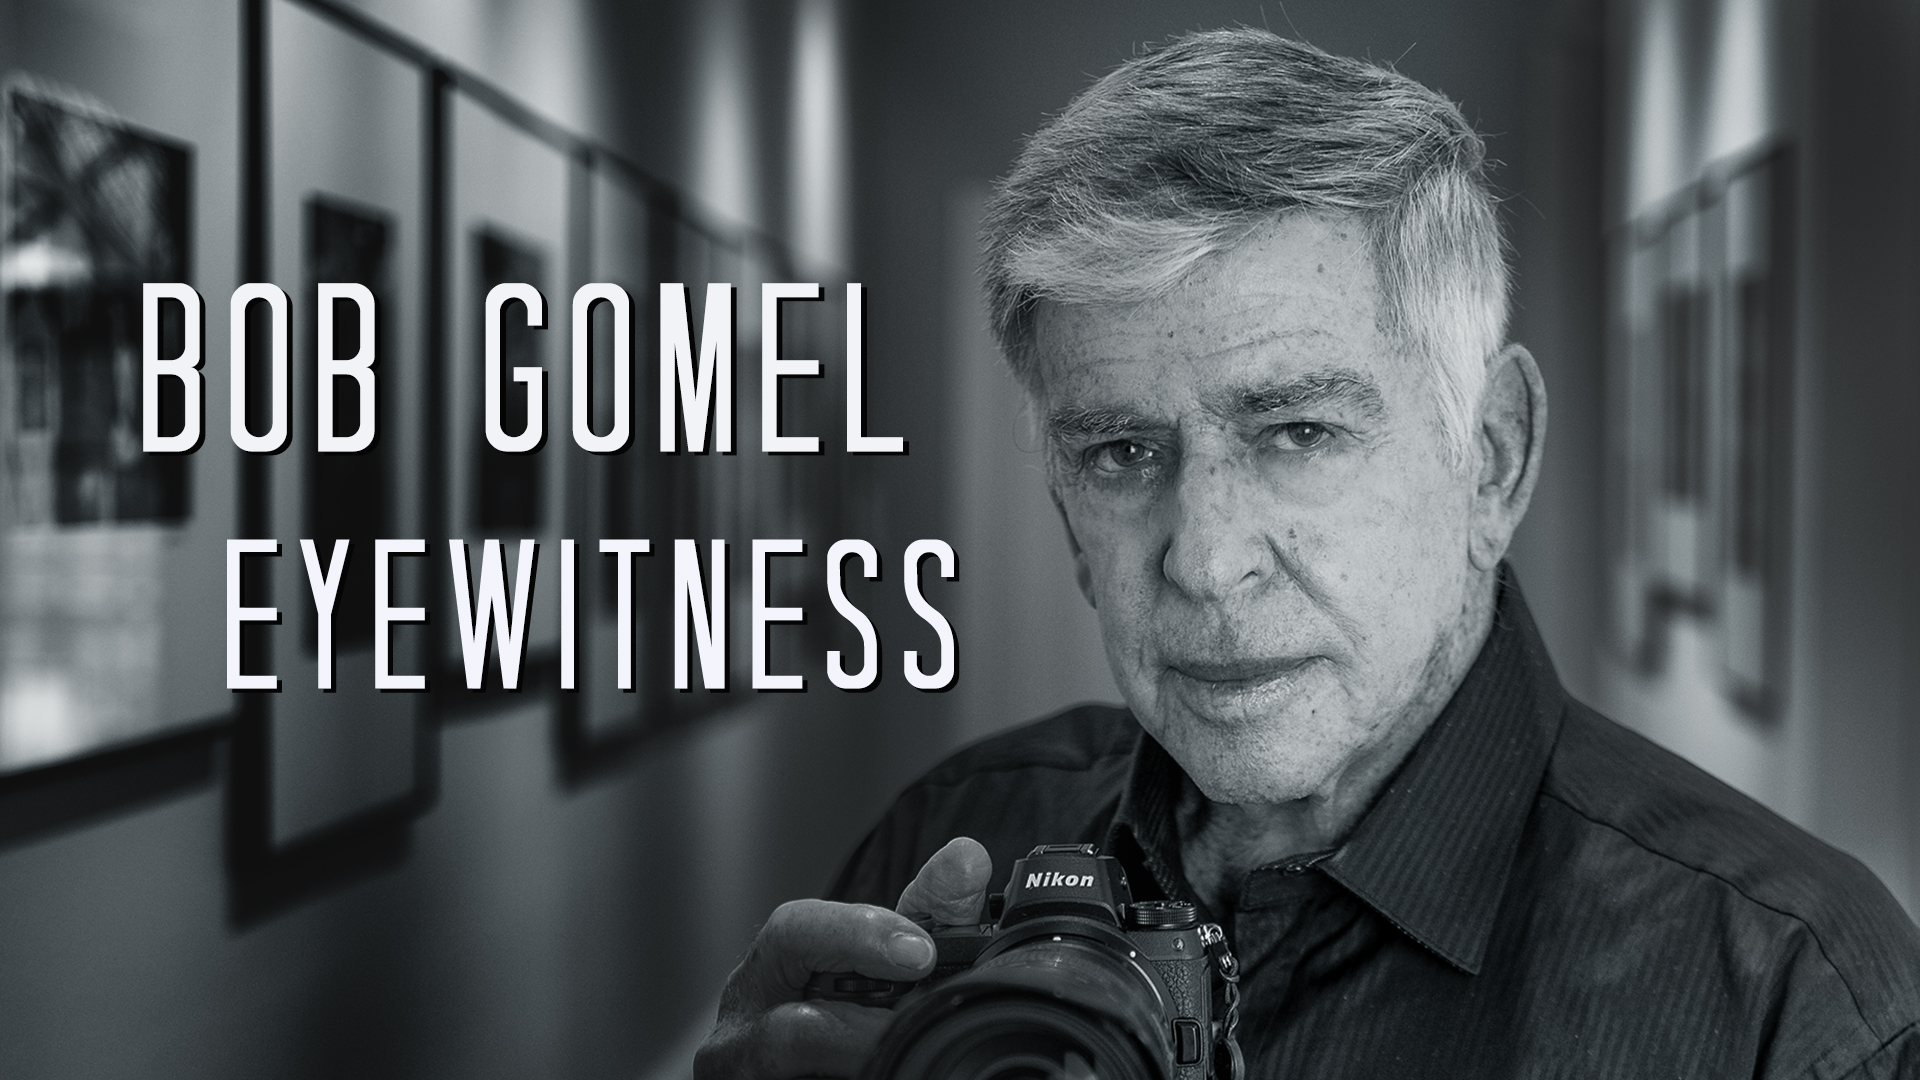 Bob Gomel : Eyewitness